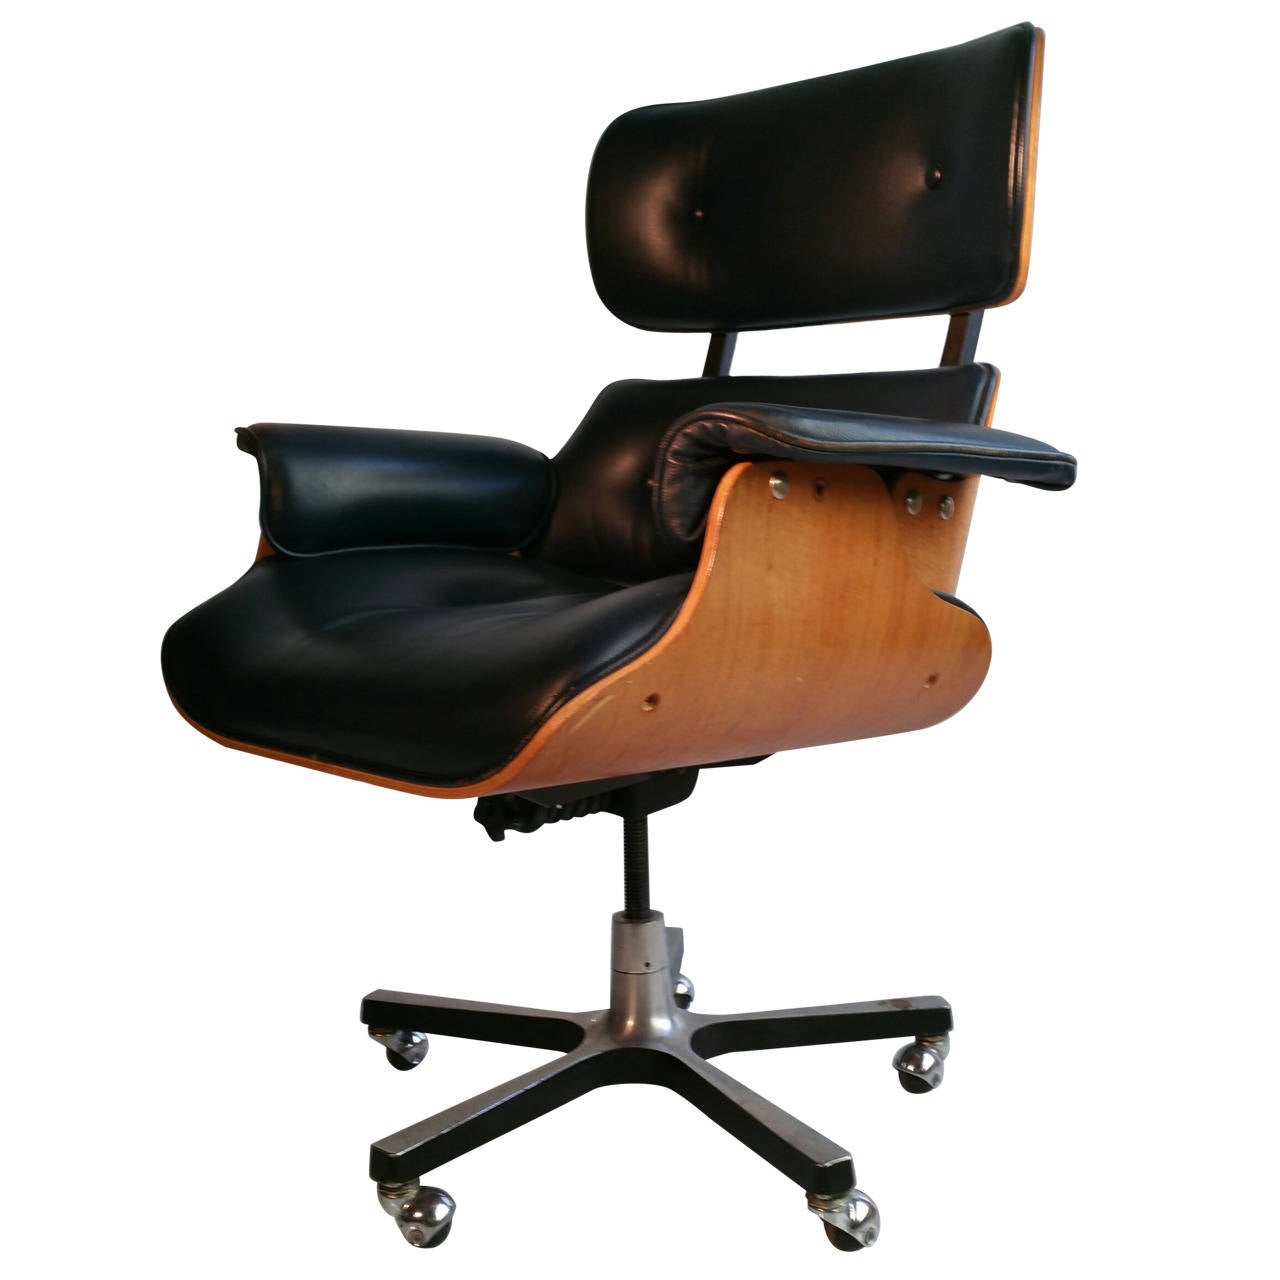 Office Chair Styles Modernist Eames Style Leather Desk Chair At 1stdibs